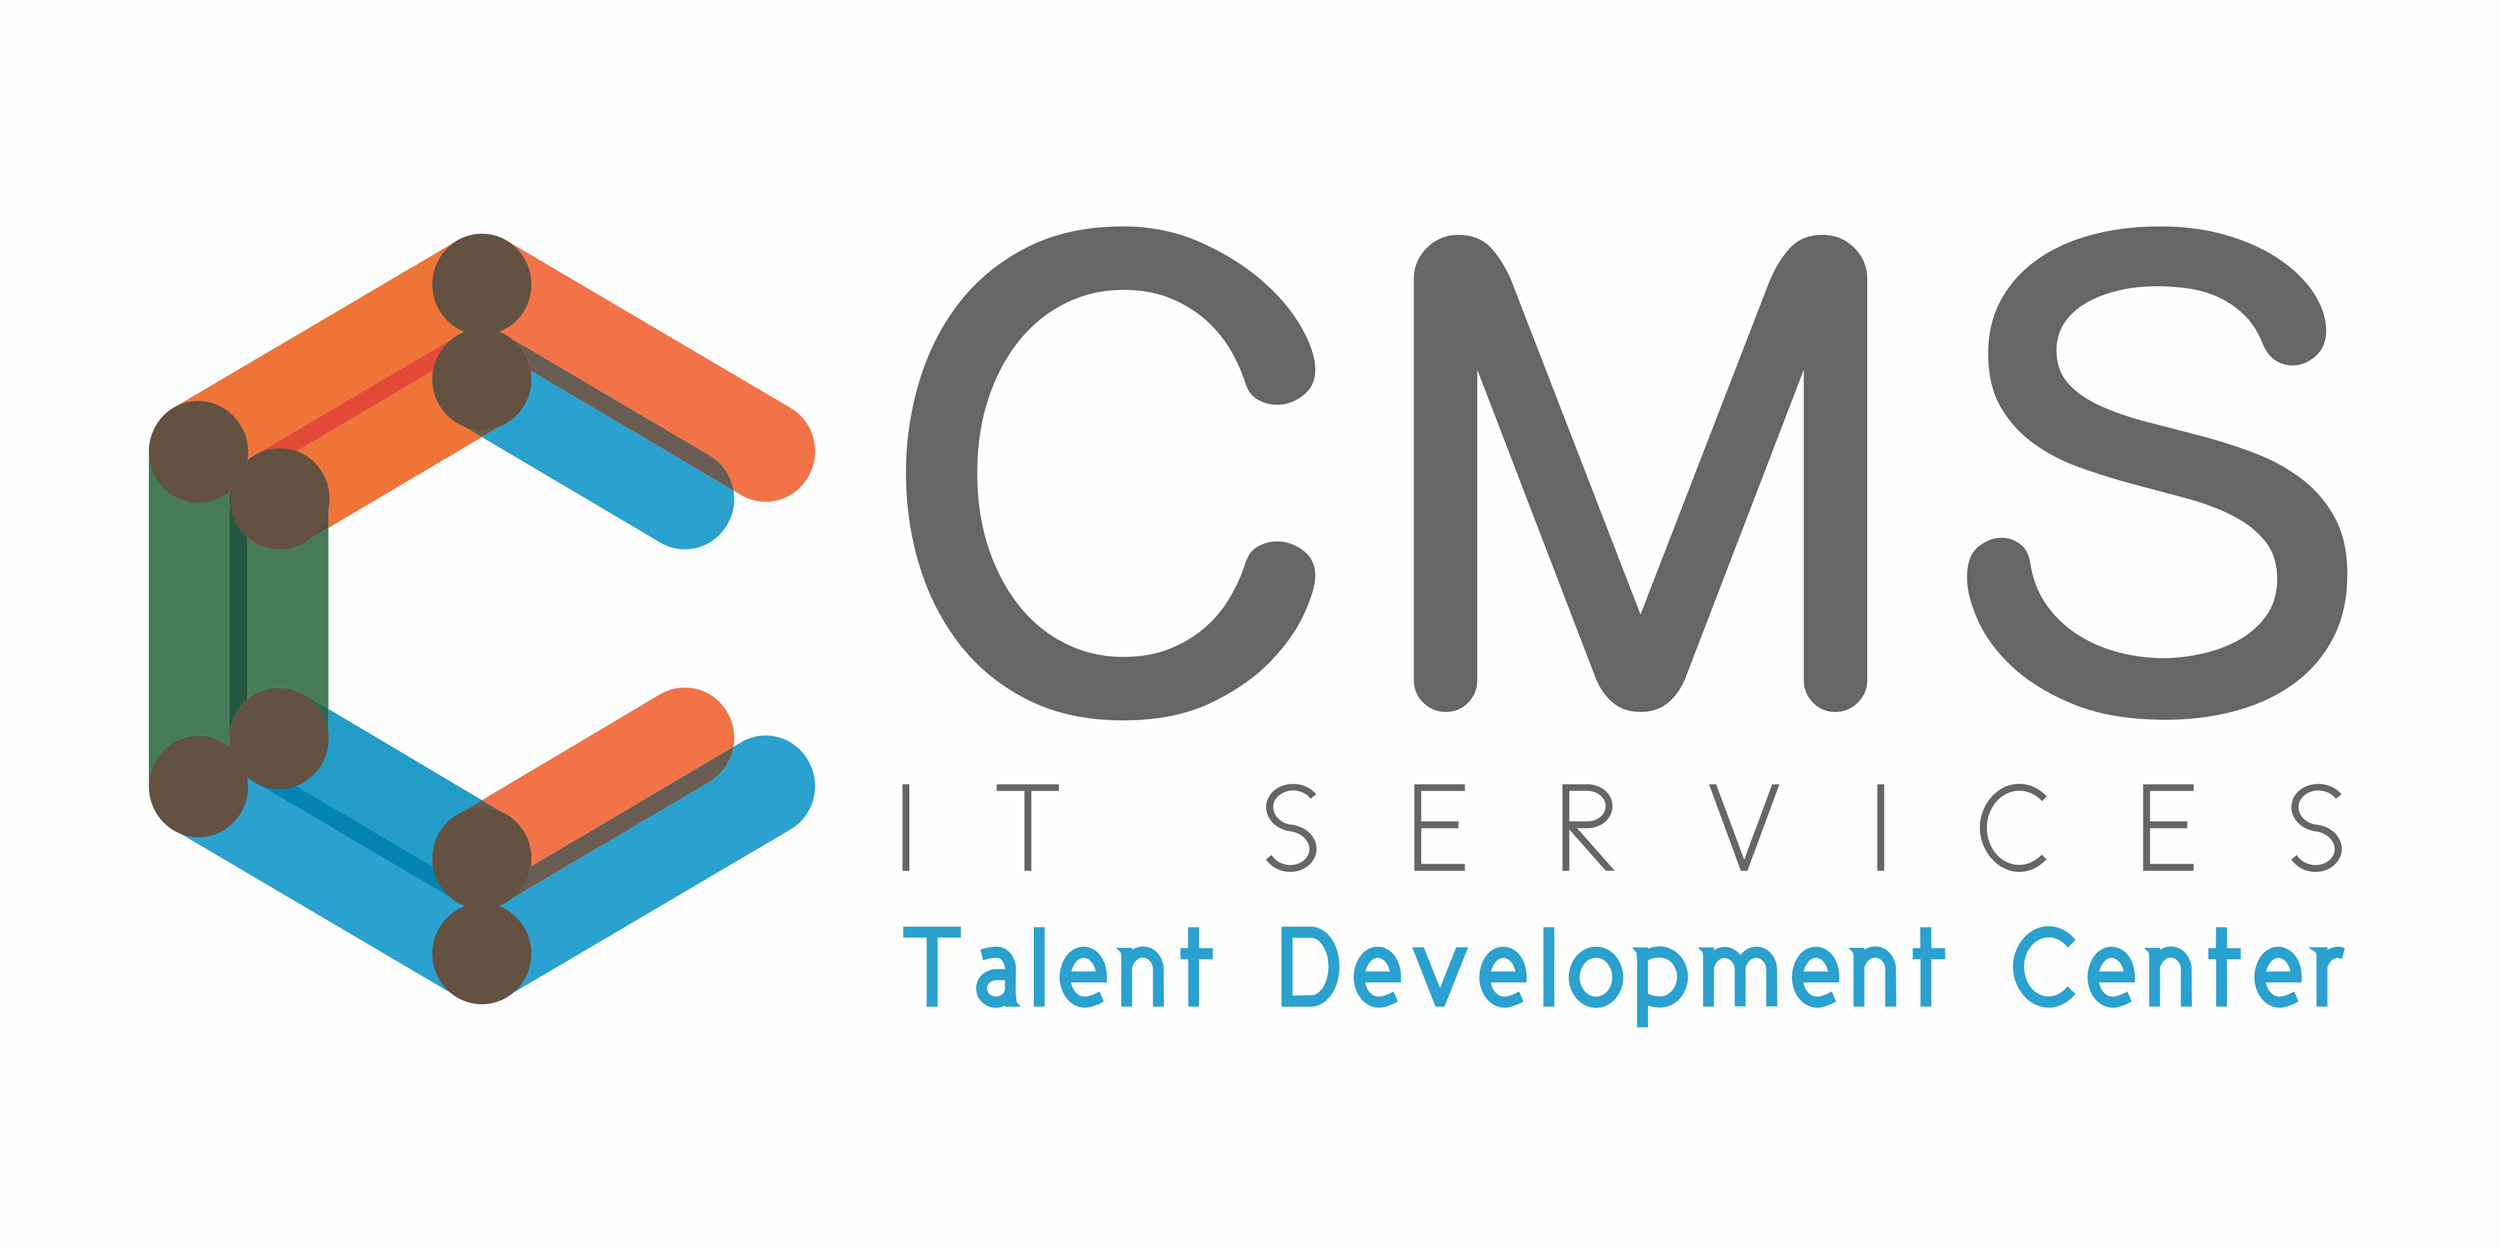 More about CMS IT Services Talent Development Center